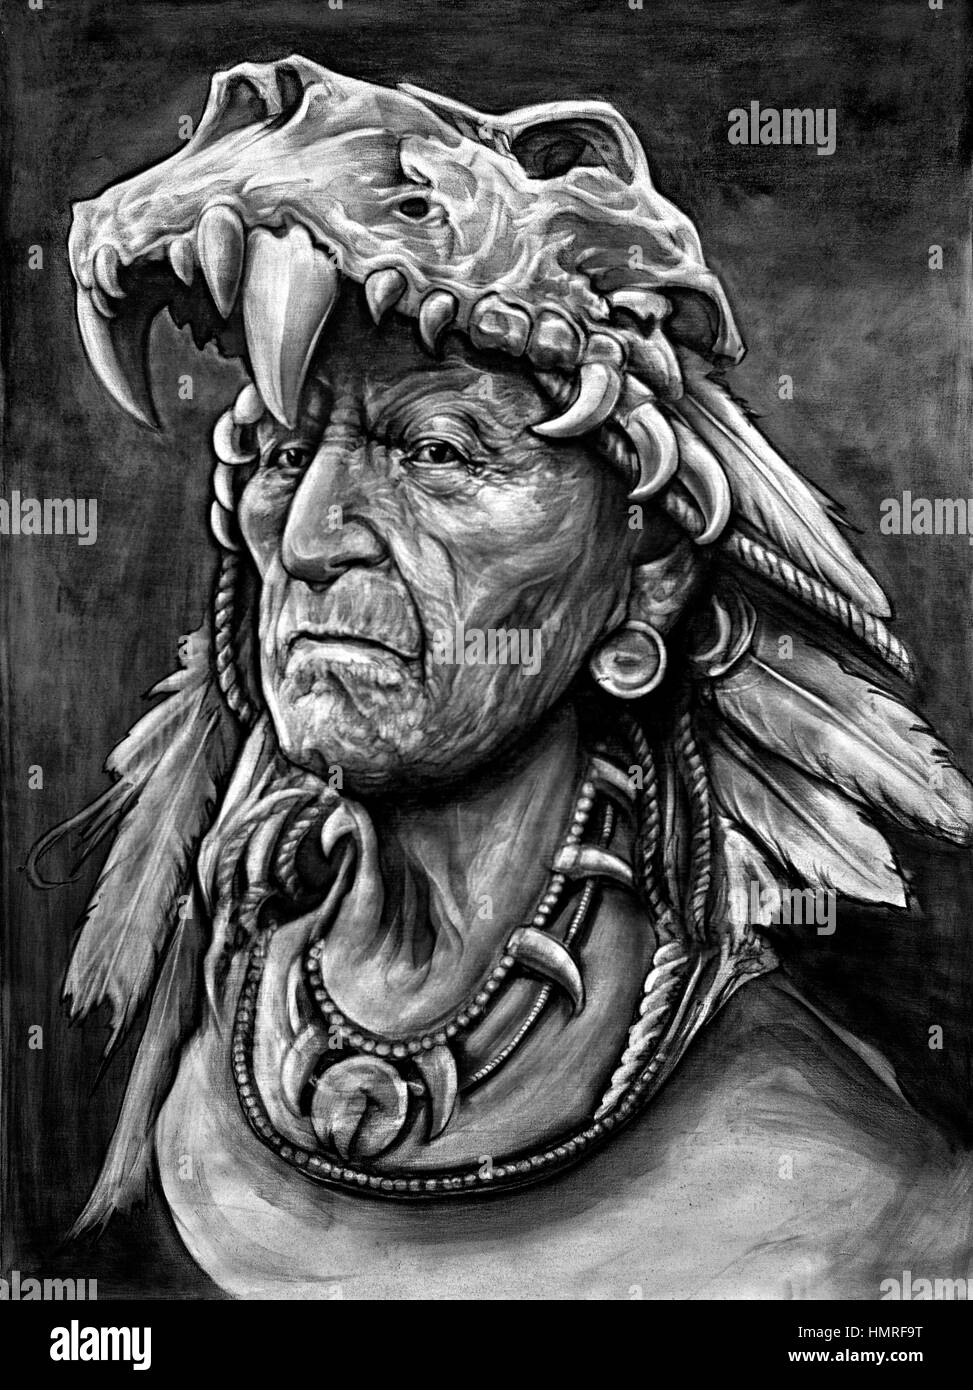 Black and white photography painting of a native american indian